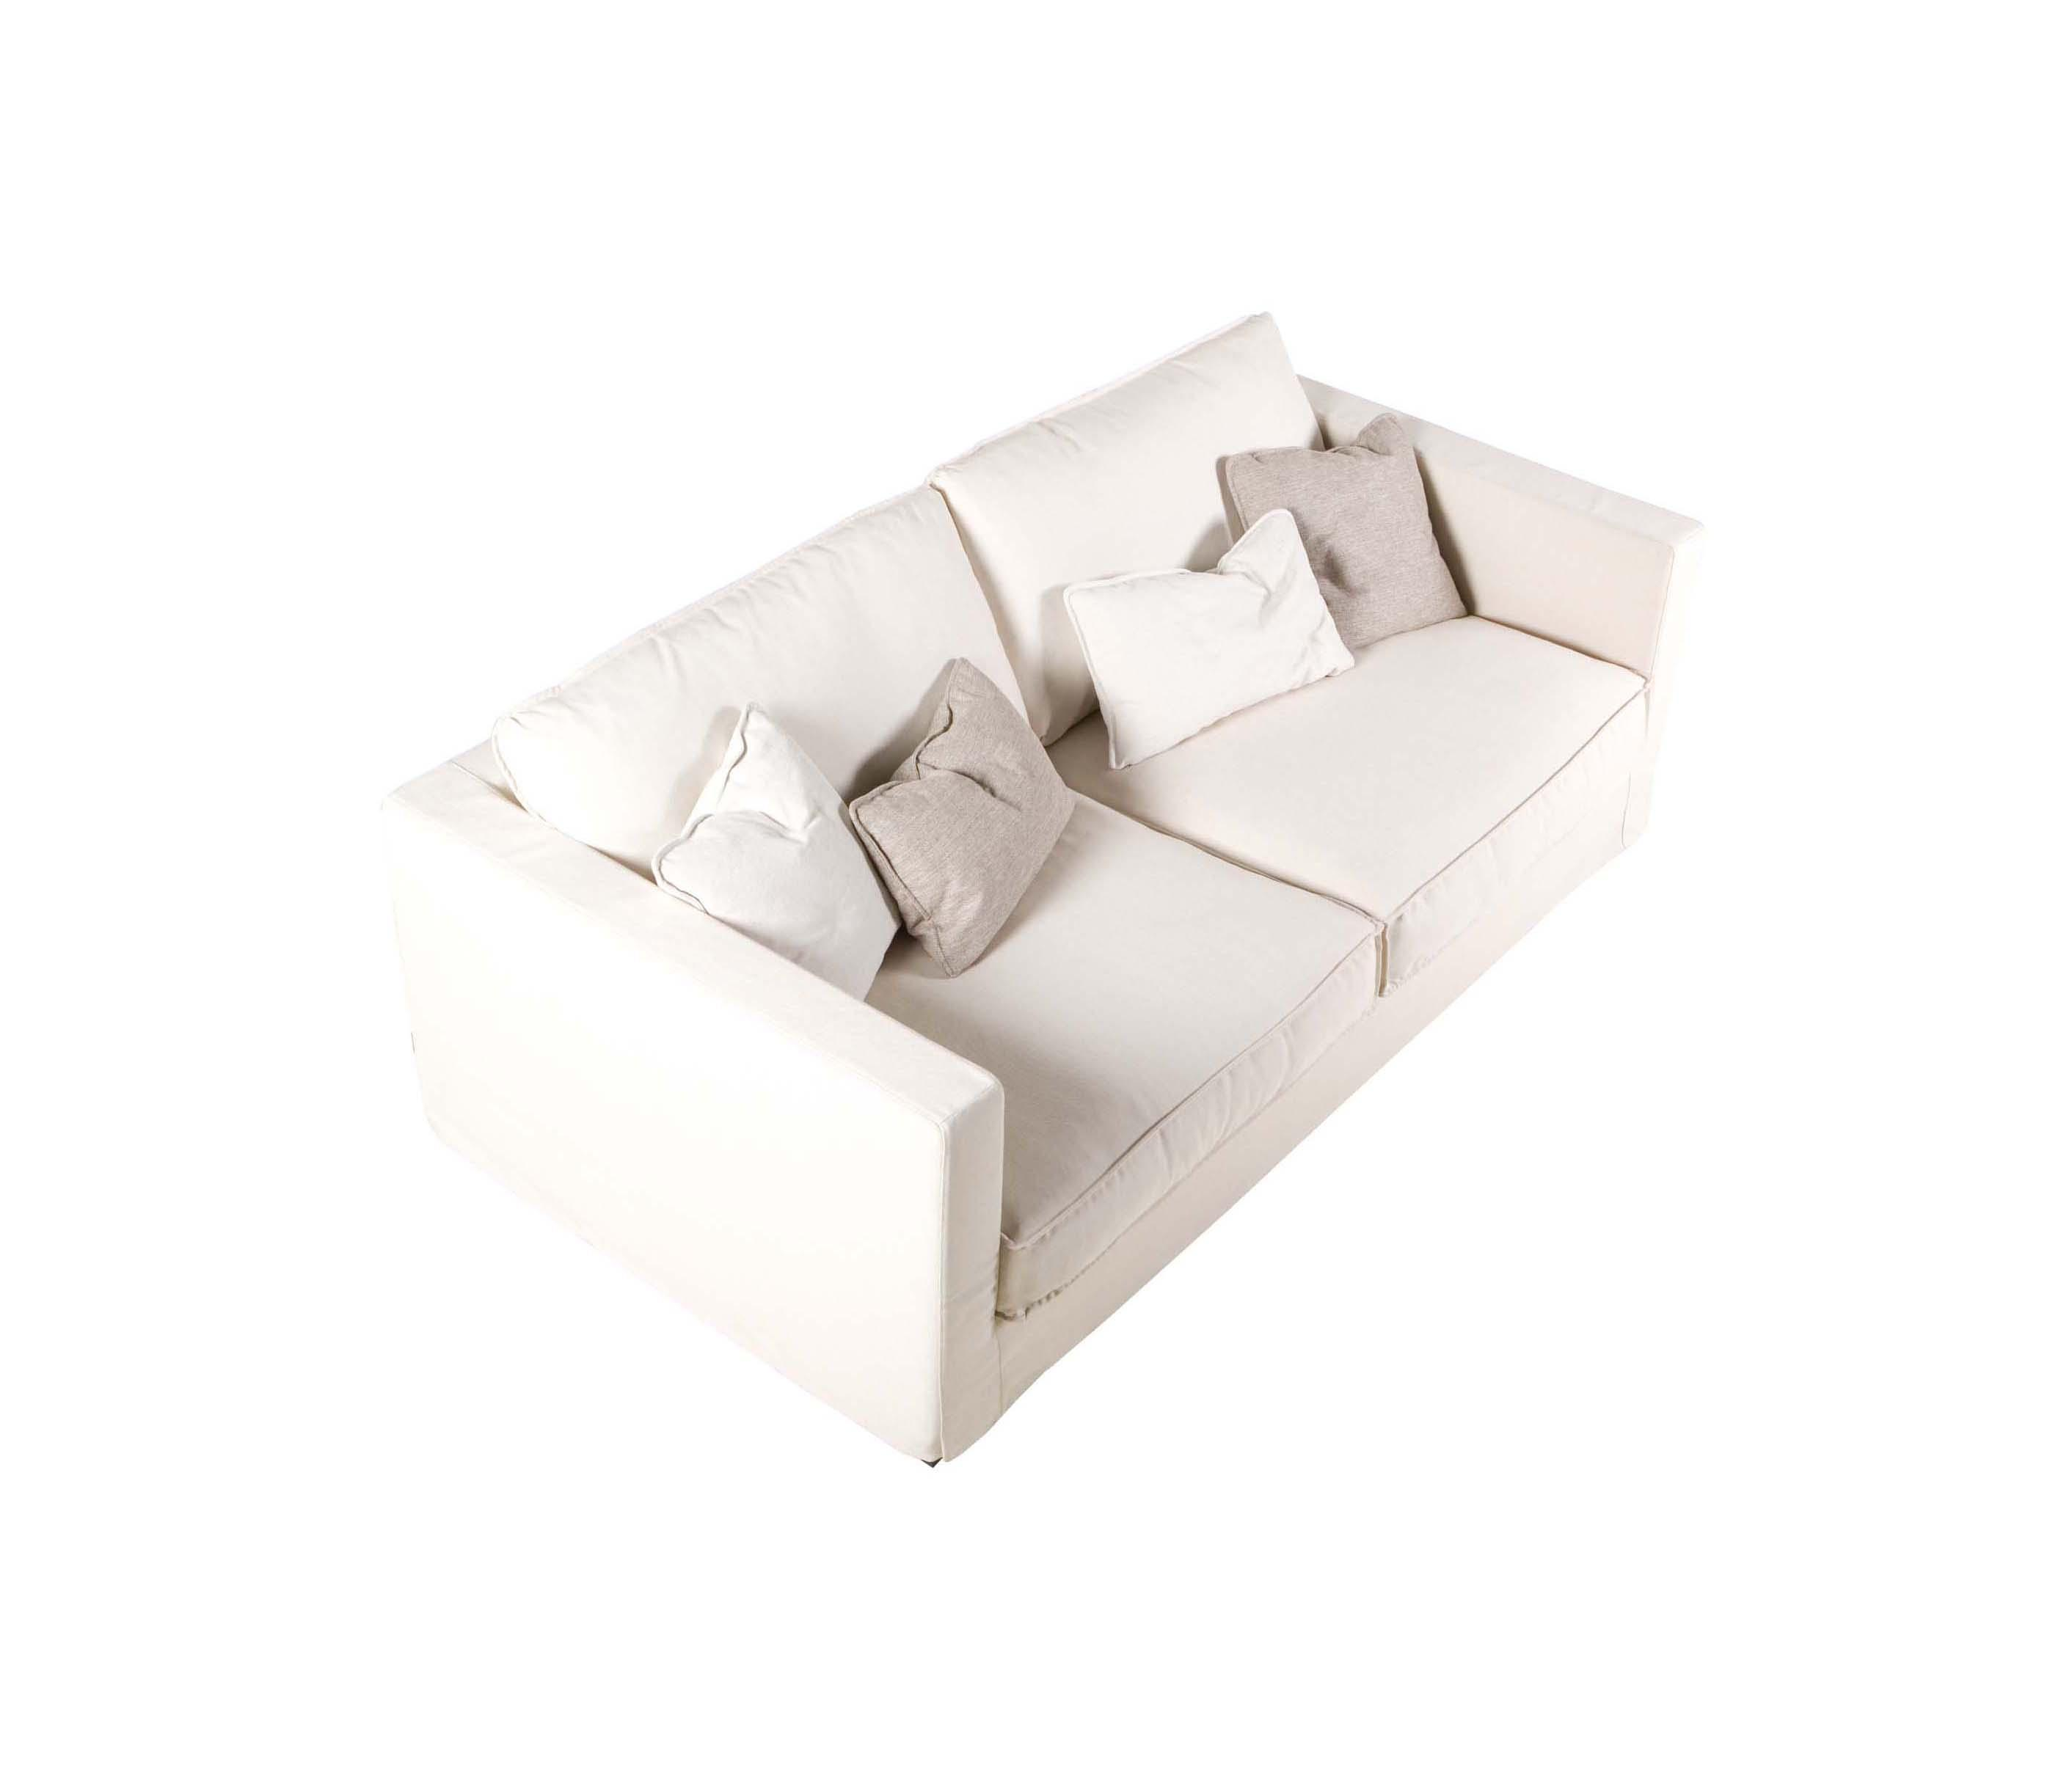 Fine Cloud Sofas From Sits Architonic Andrewgaddart Wooden Chair Designs For Living Room Andrewgaddartcom